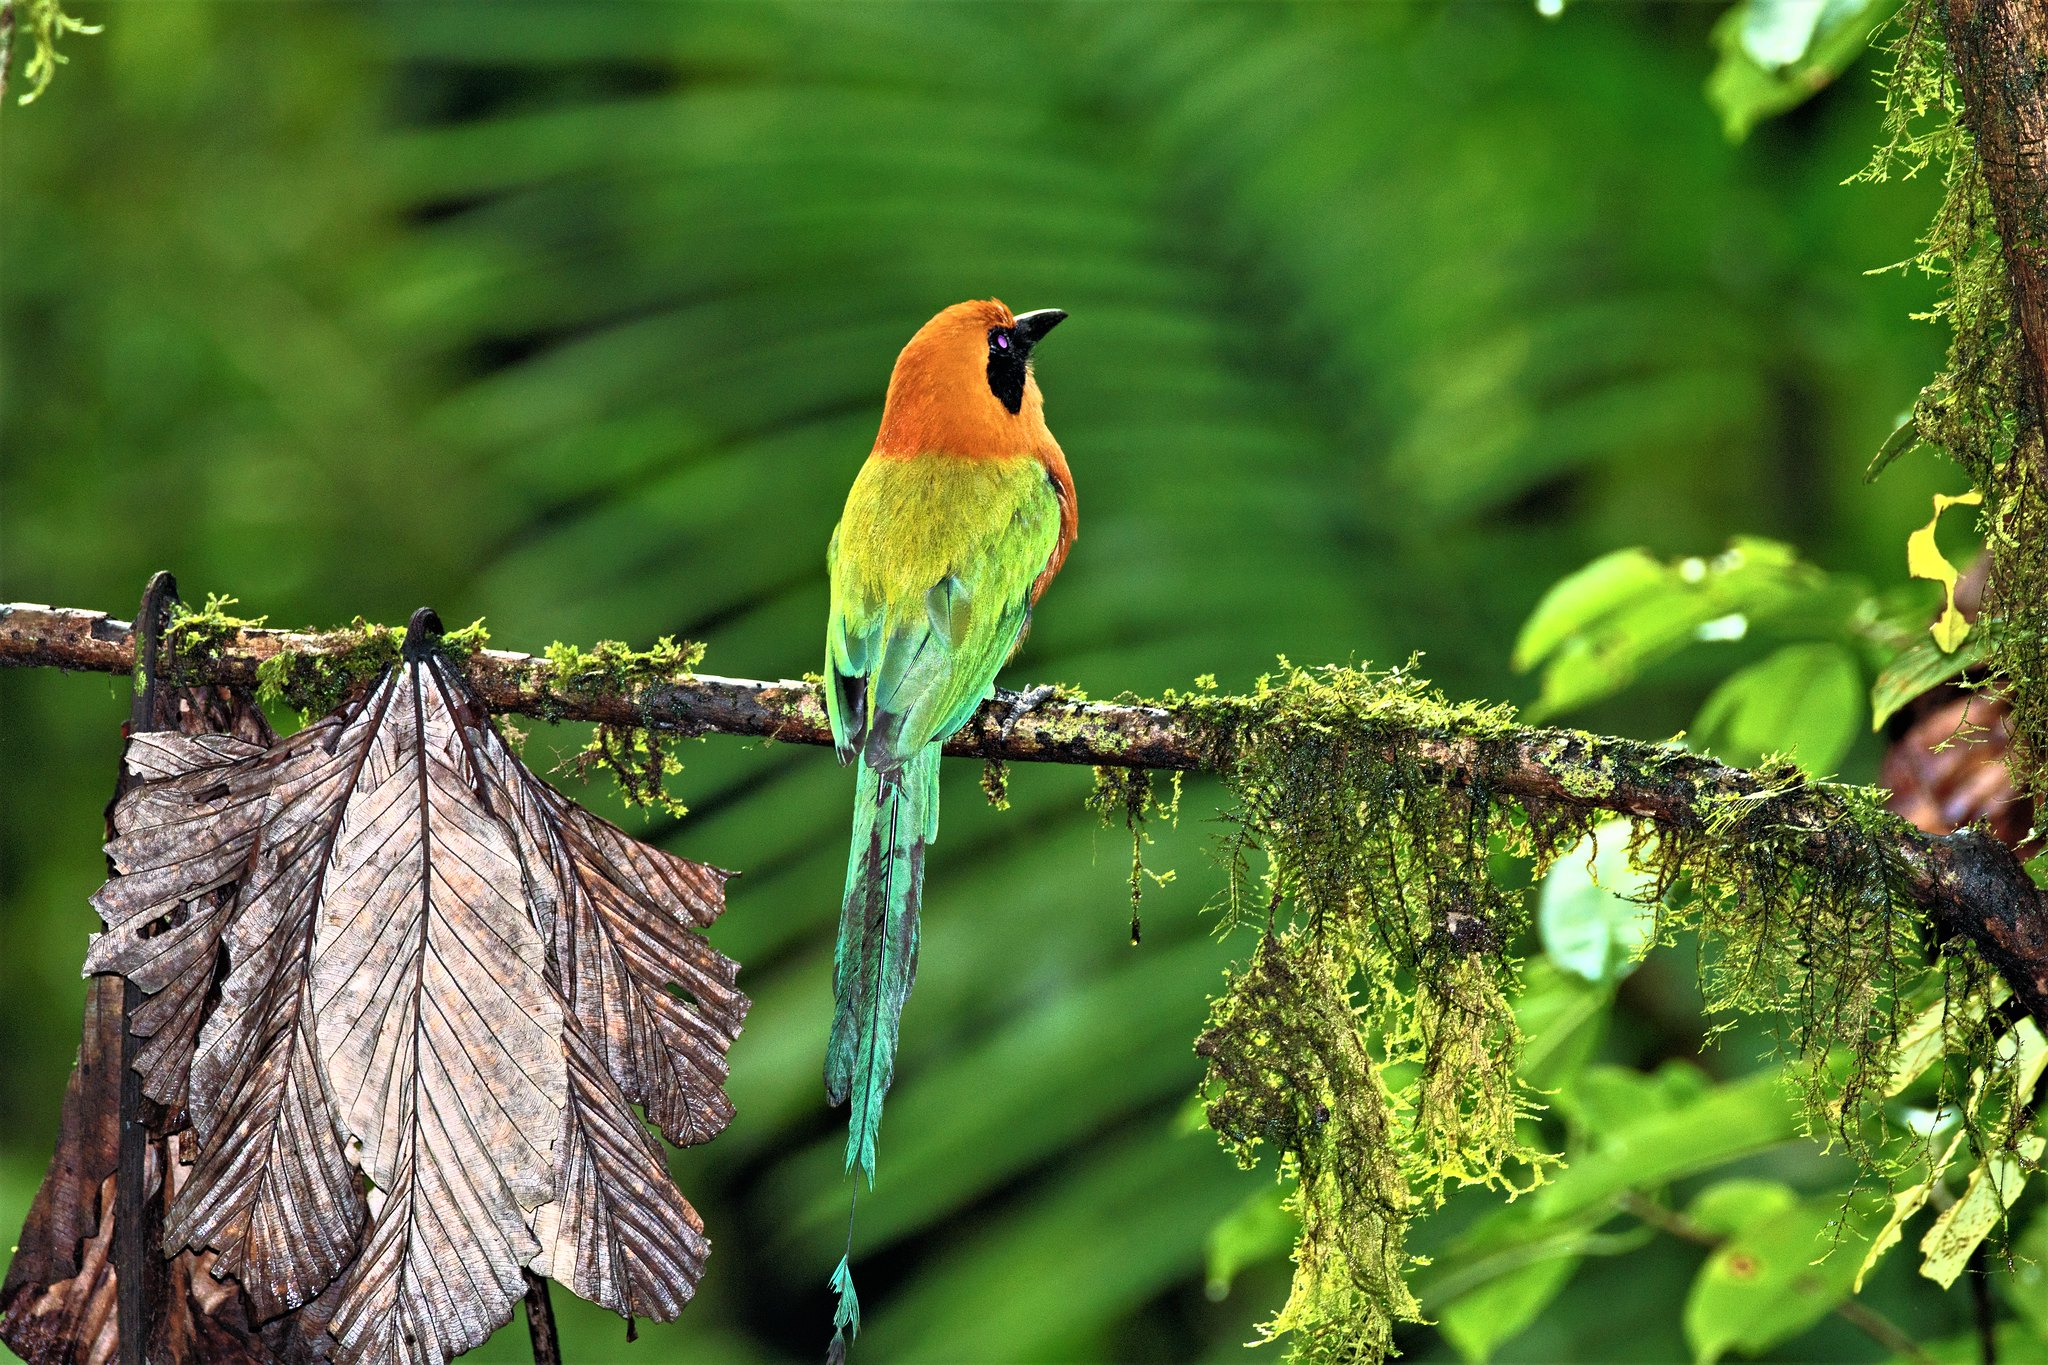 Rufous Motmot back view